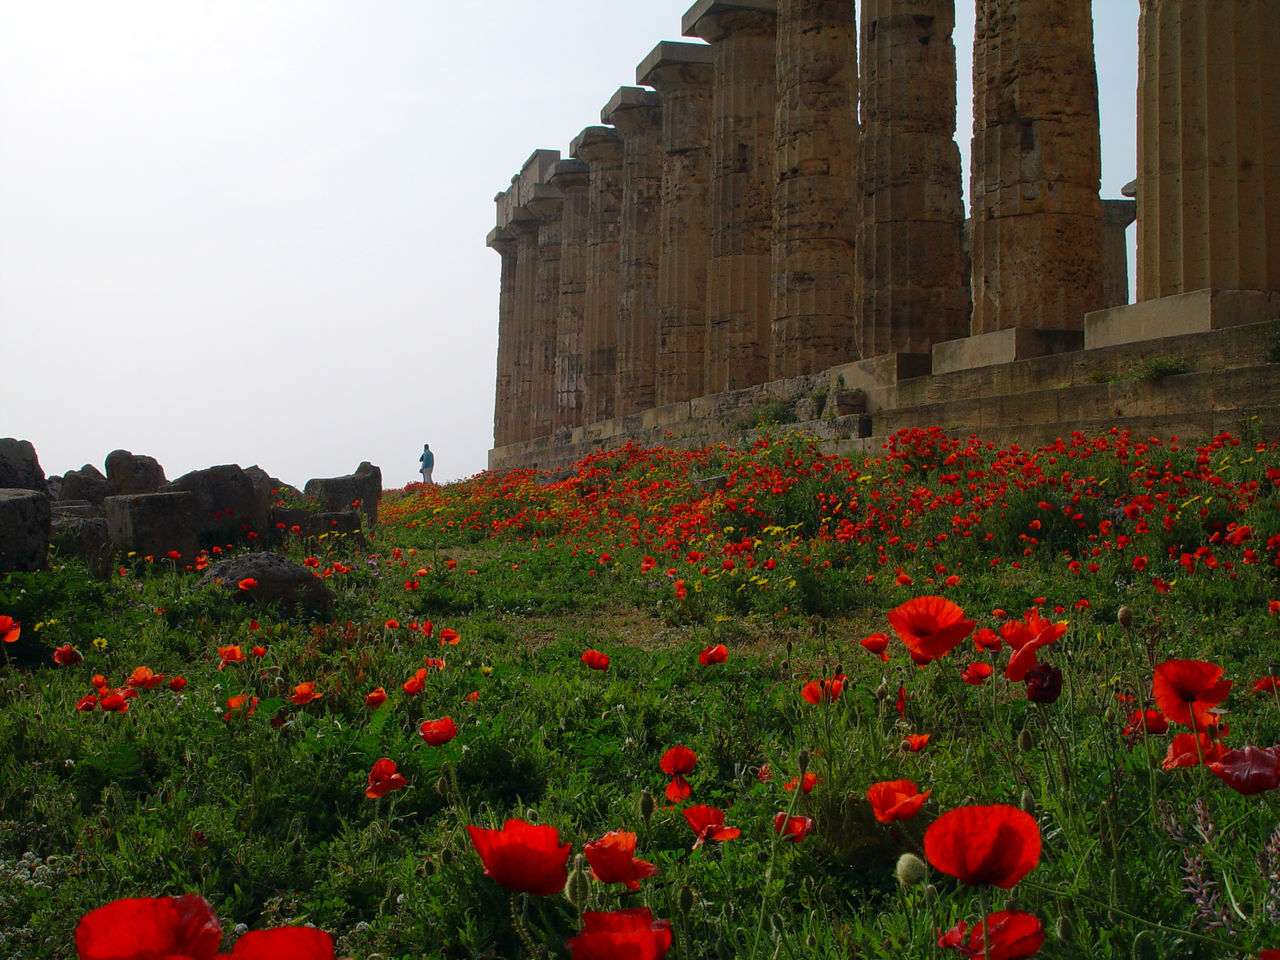 flower, flowering plant, red, plant, architecture, building exterior, history, the past, built structure, nature, freshness, fragility, growth, sky, poppy, beauty in nature, vulnerability, day, no people, land, outdoors, flower head, ancient civilization, flowerbed